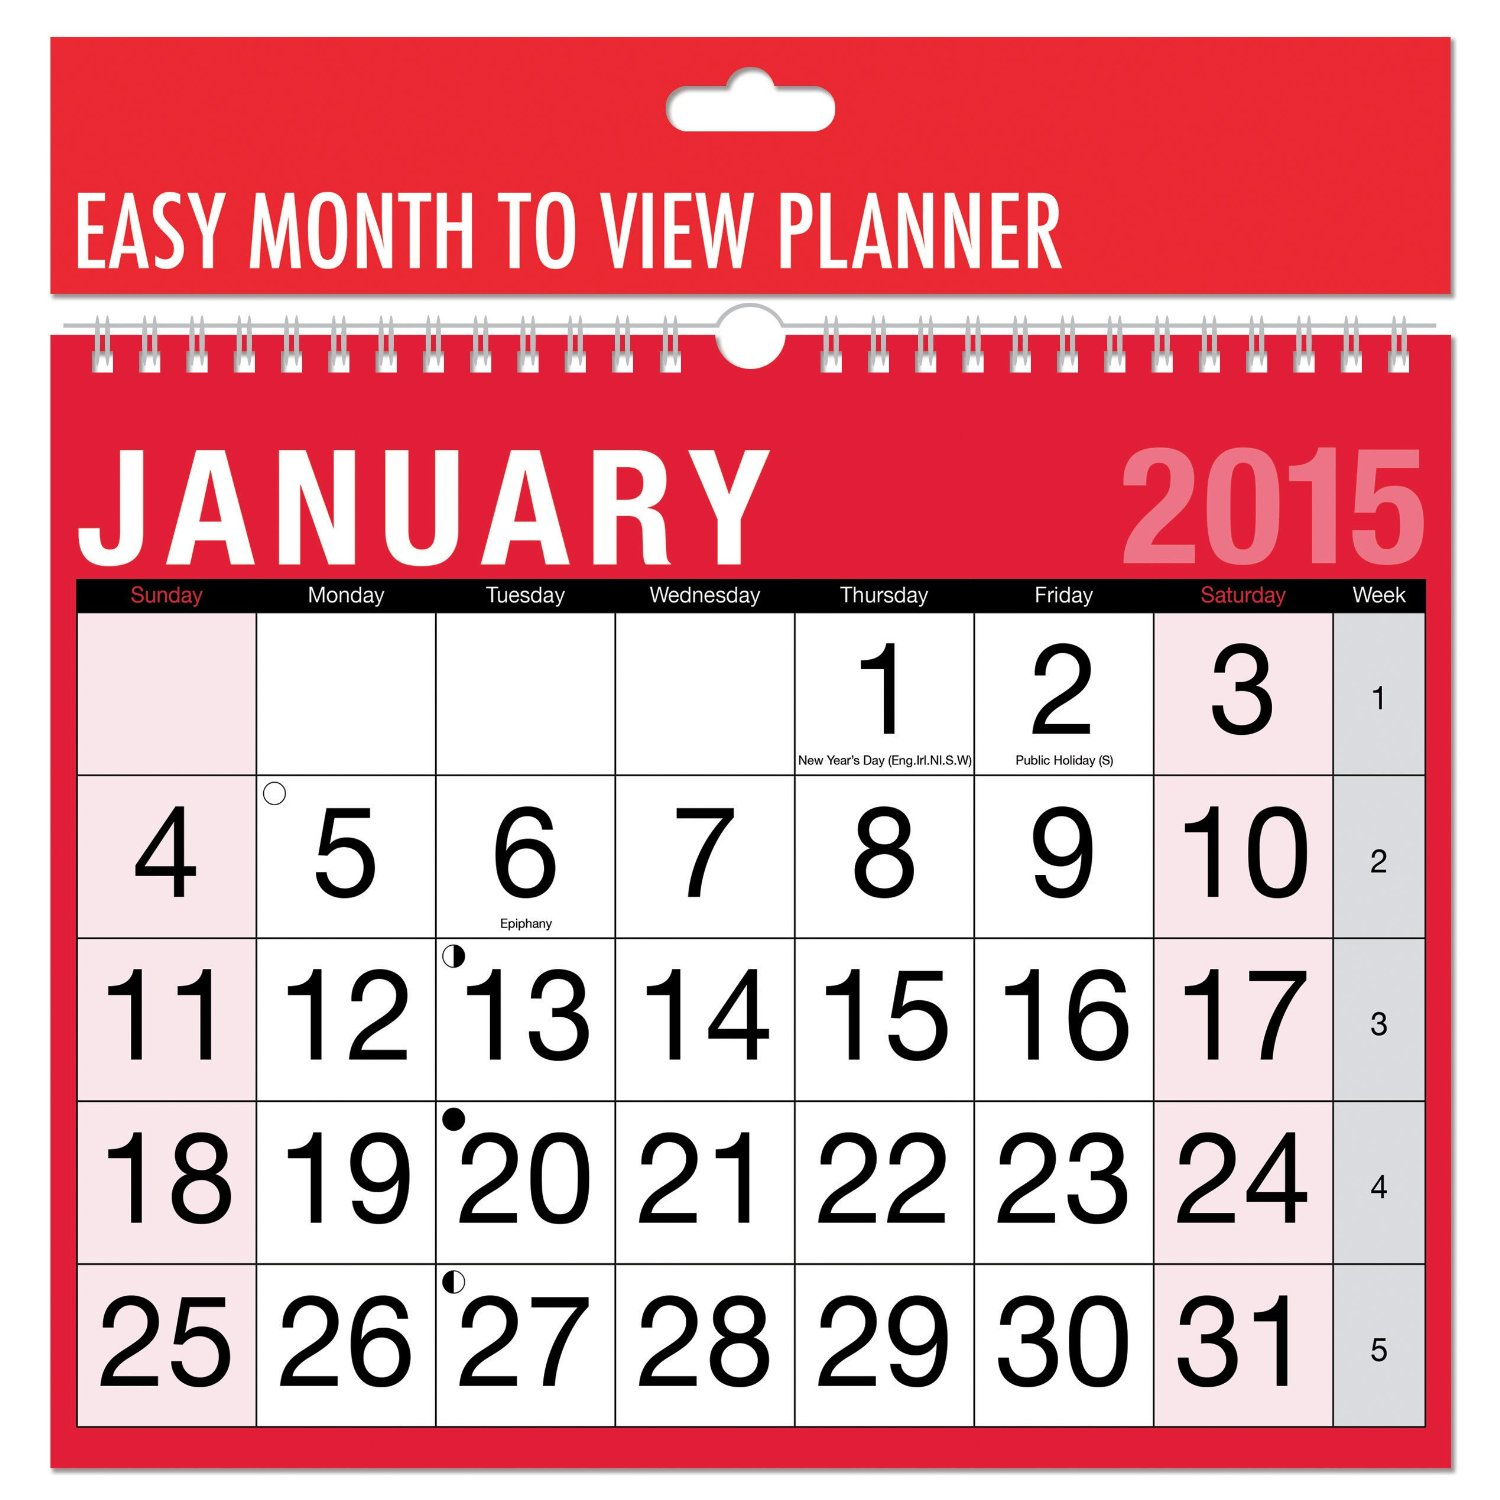 sneakers for cheap 5c5a4 f30fe BARGAIN 2015 Calendar View Planner £1 delivered at Amazon .